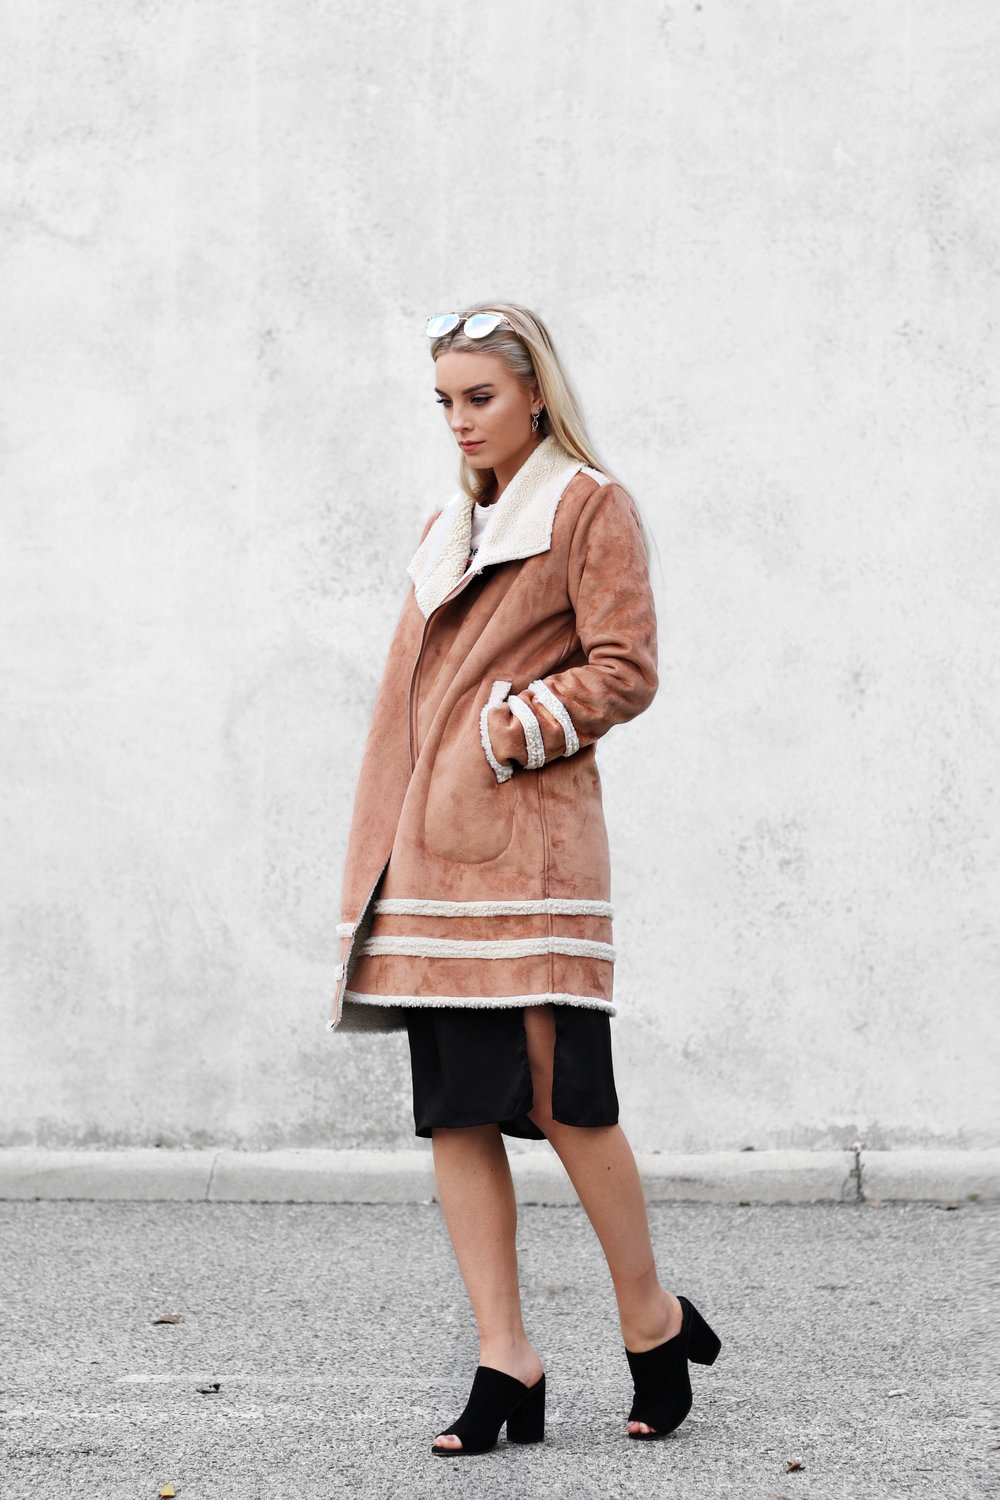 Brown Shearling Coat in Winter 2 | Izzy Wears Blog